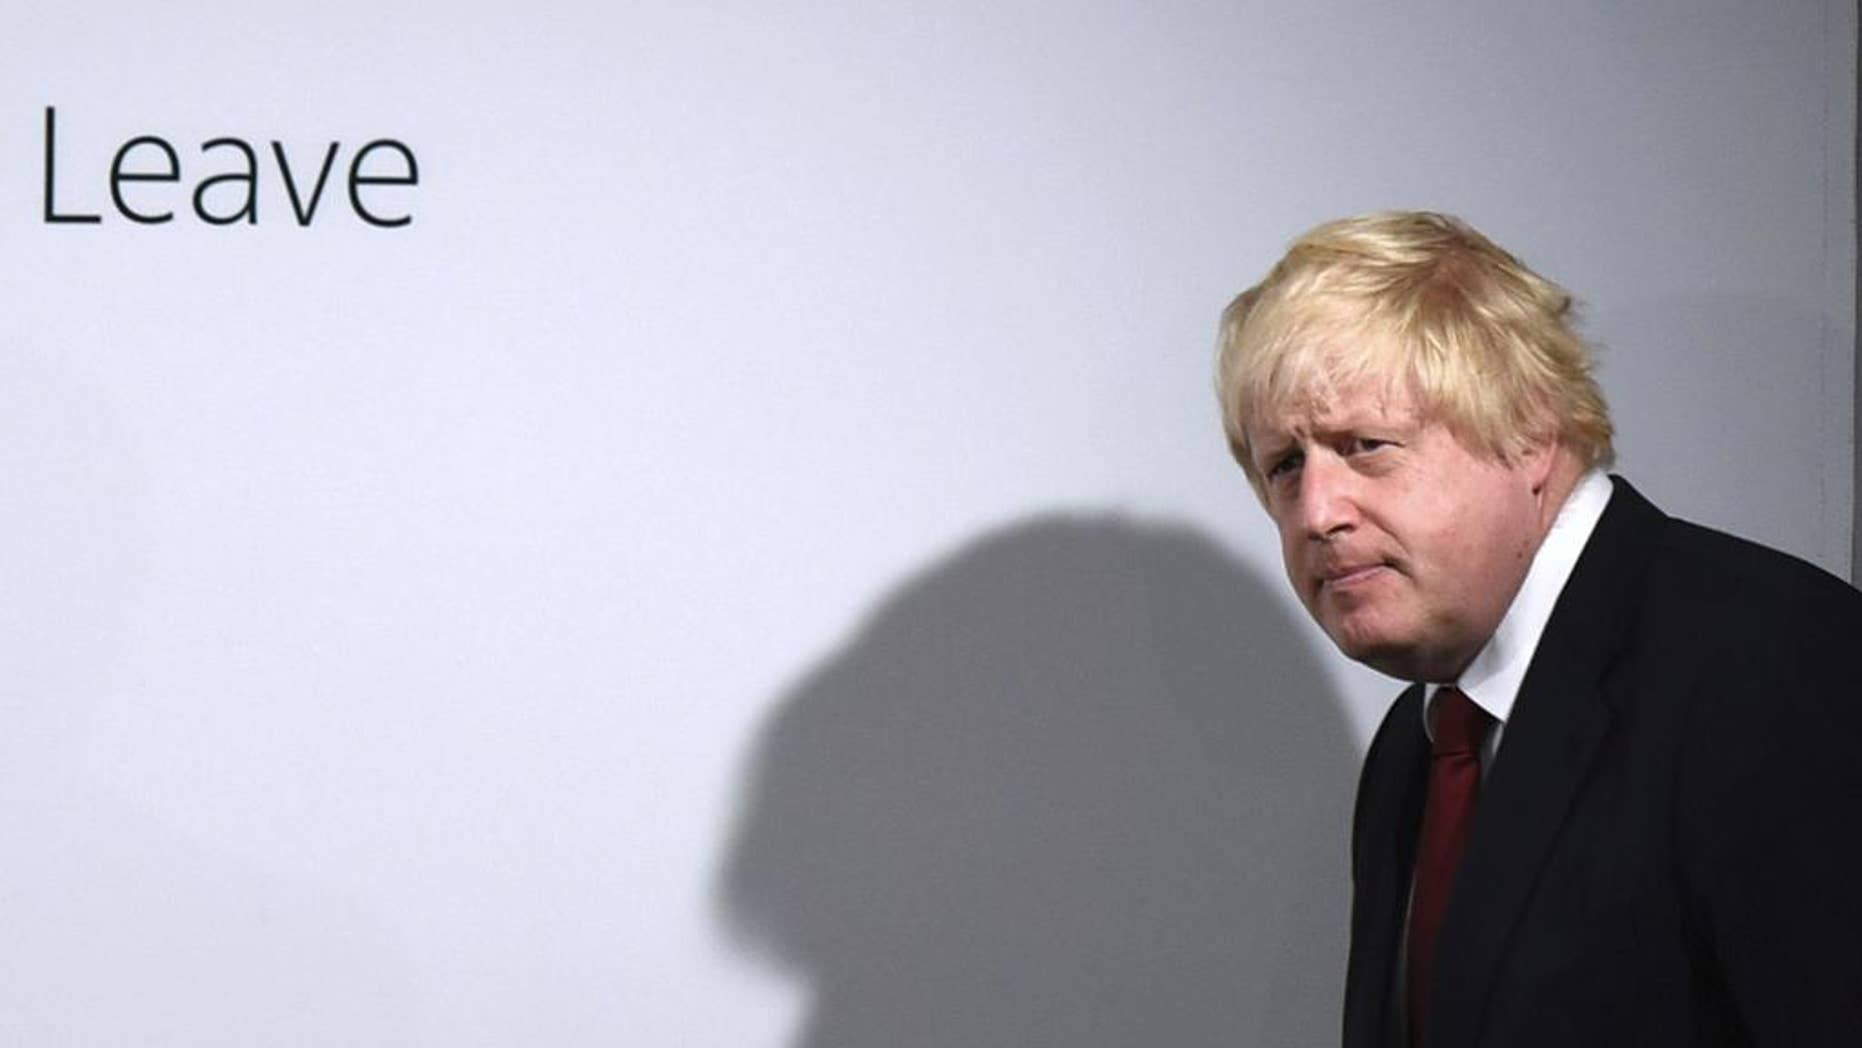 "FILE - In this Friday, June 24, 2016 file photo, Vote Leave campaigner Boris Johnson arrives for a press conference at Vote Leave headquarters in London . In the crucial days before Foreign Secretary Boris Johnson embraced Britain's ""leave campaign,"" he wrote a newspaper column explaining why Britain should remain inside the European Union _ but those forceful words were never published before Britain's June 23 vote. The Sunday Times has now published Johnson's pro-EU column, which outlines his fears about leaving the EU on SUnday, Oct. 16, 2016.  (Mary Turner/Pool via AP, File)"